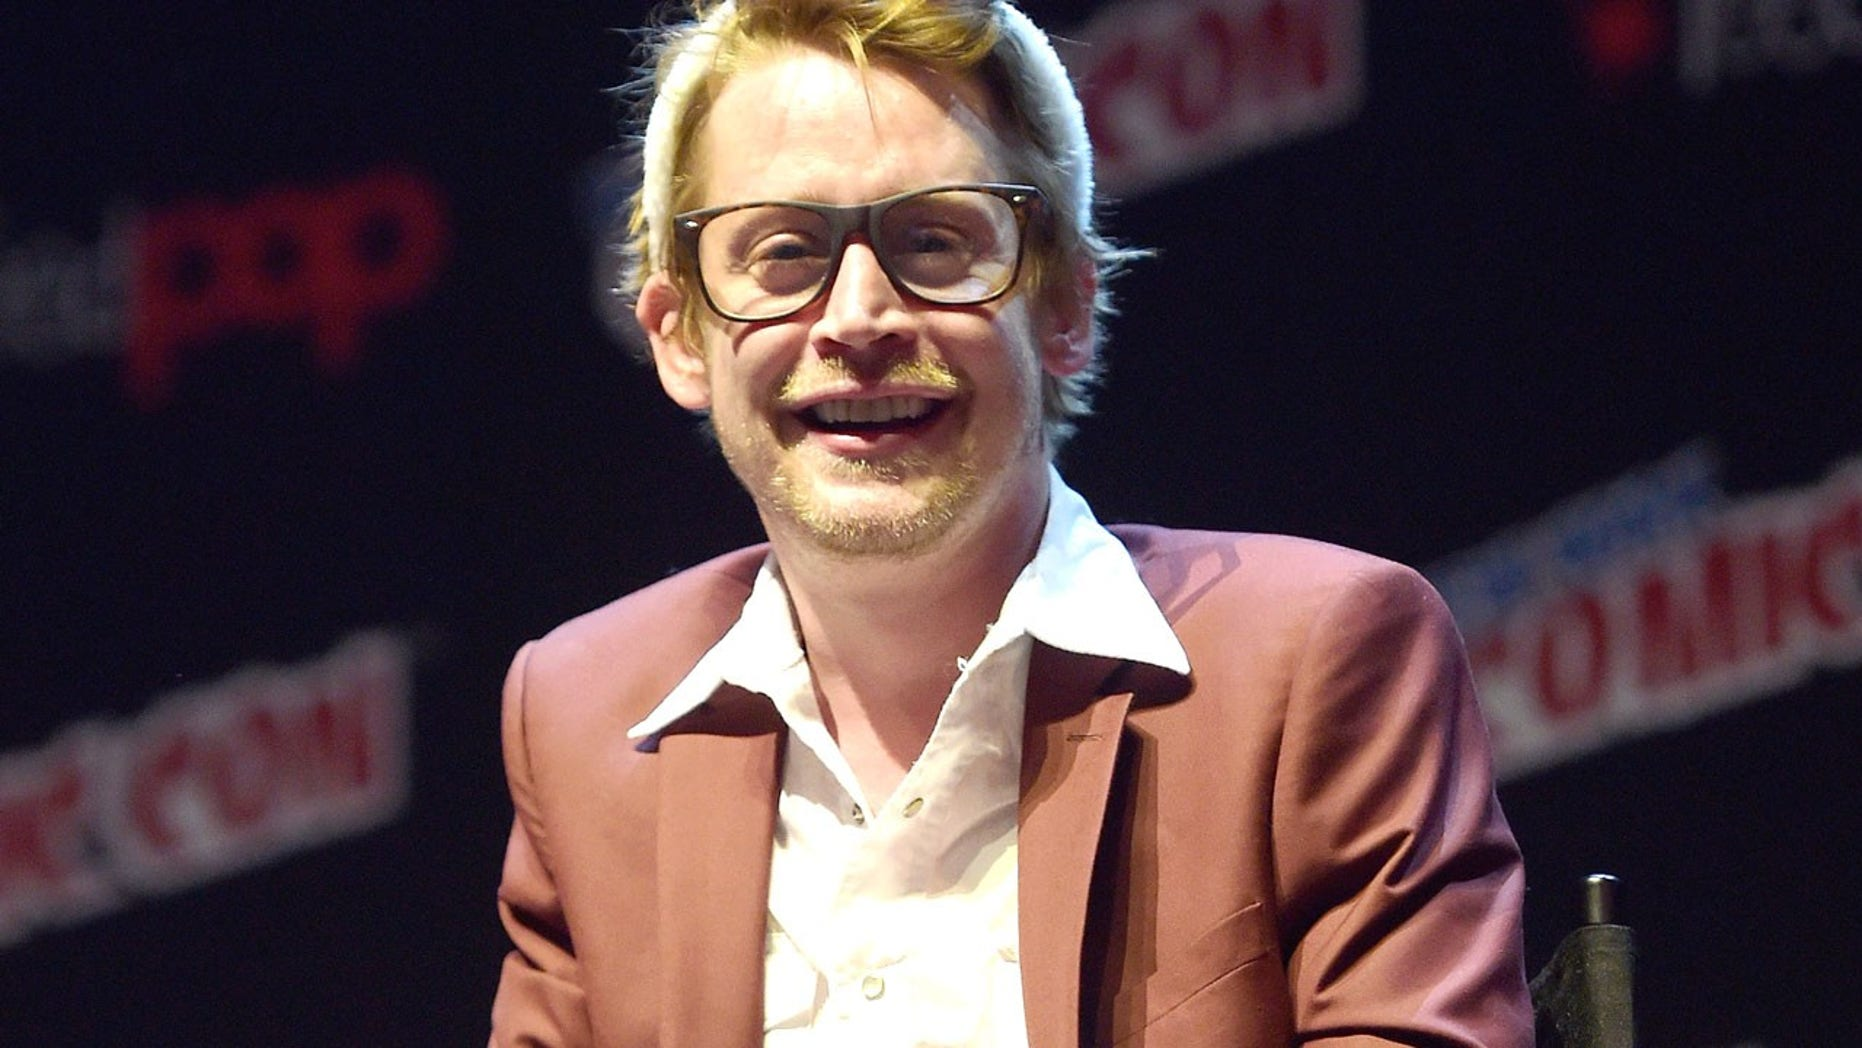 Former child star Macaulay Culkin opens up about losing his virginity at age 15.